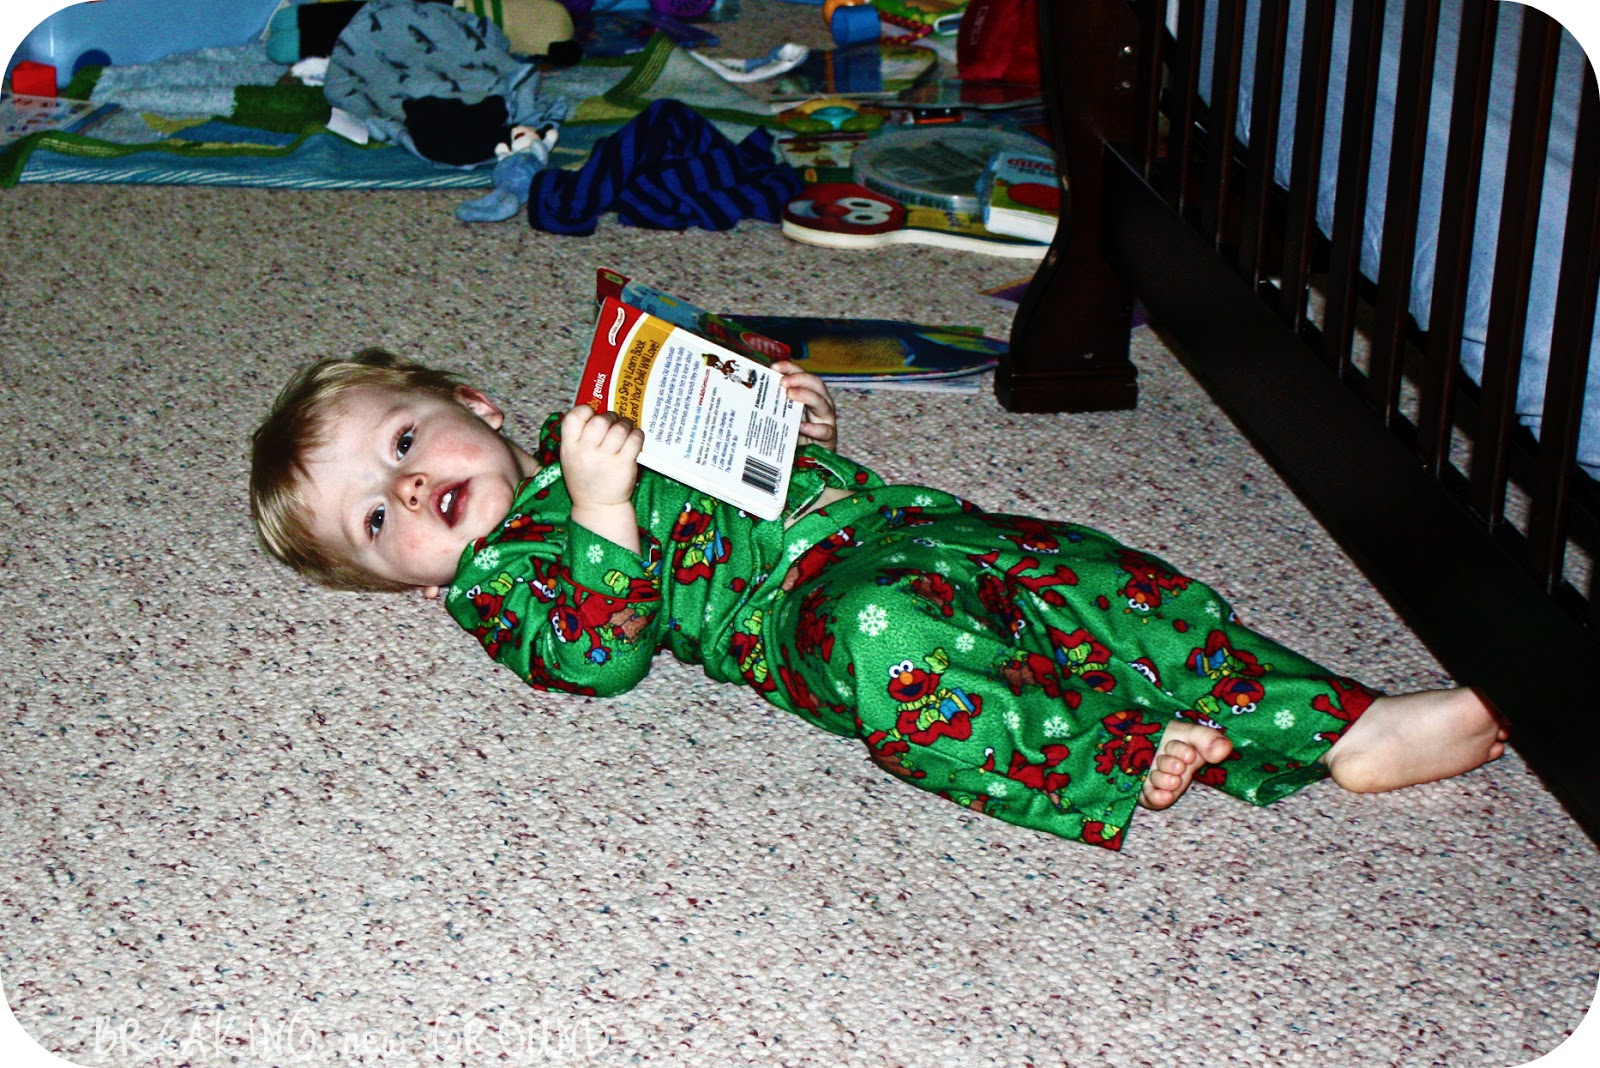 kaireadingeieio At Diapers.com, we know play is a huge part of your child's developmental ...